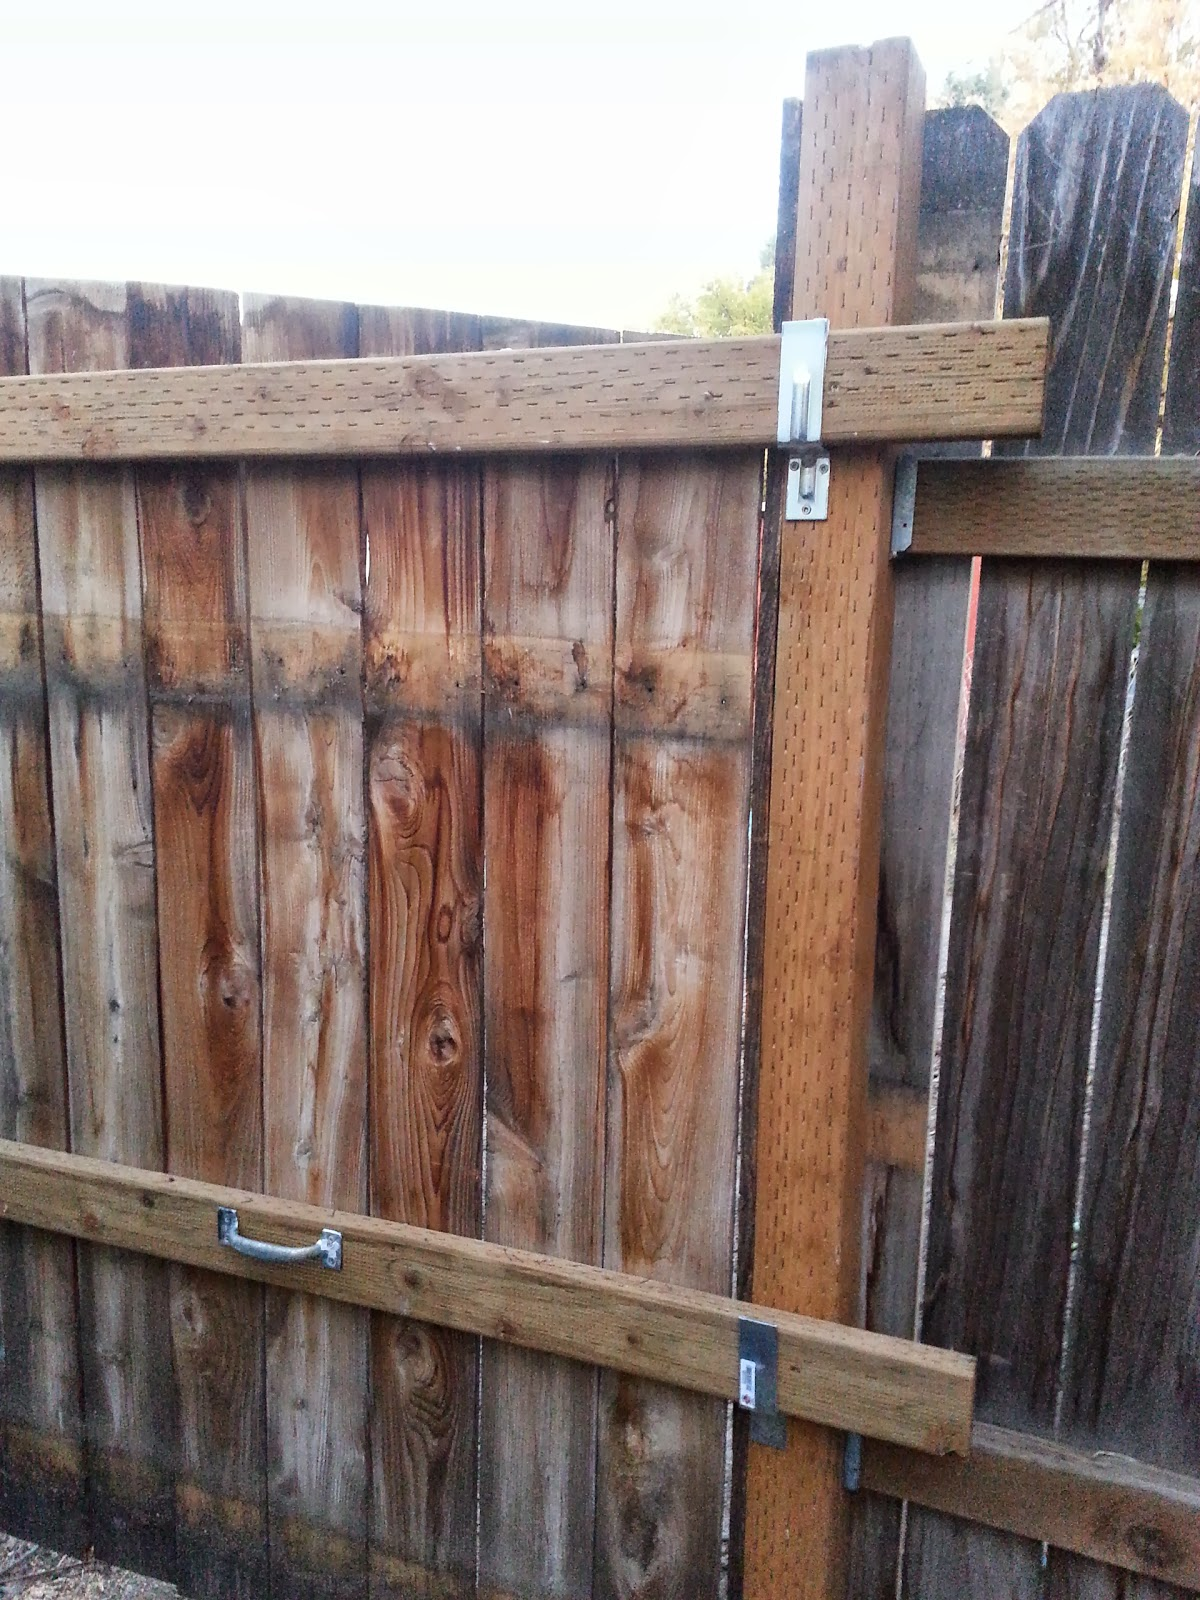 How To Build A Removable Fence Panelhow To Build A Removable Fence Panel South Florida Is A High